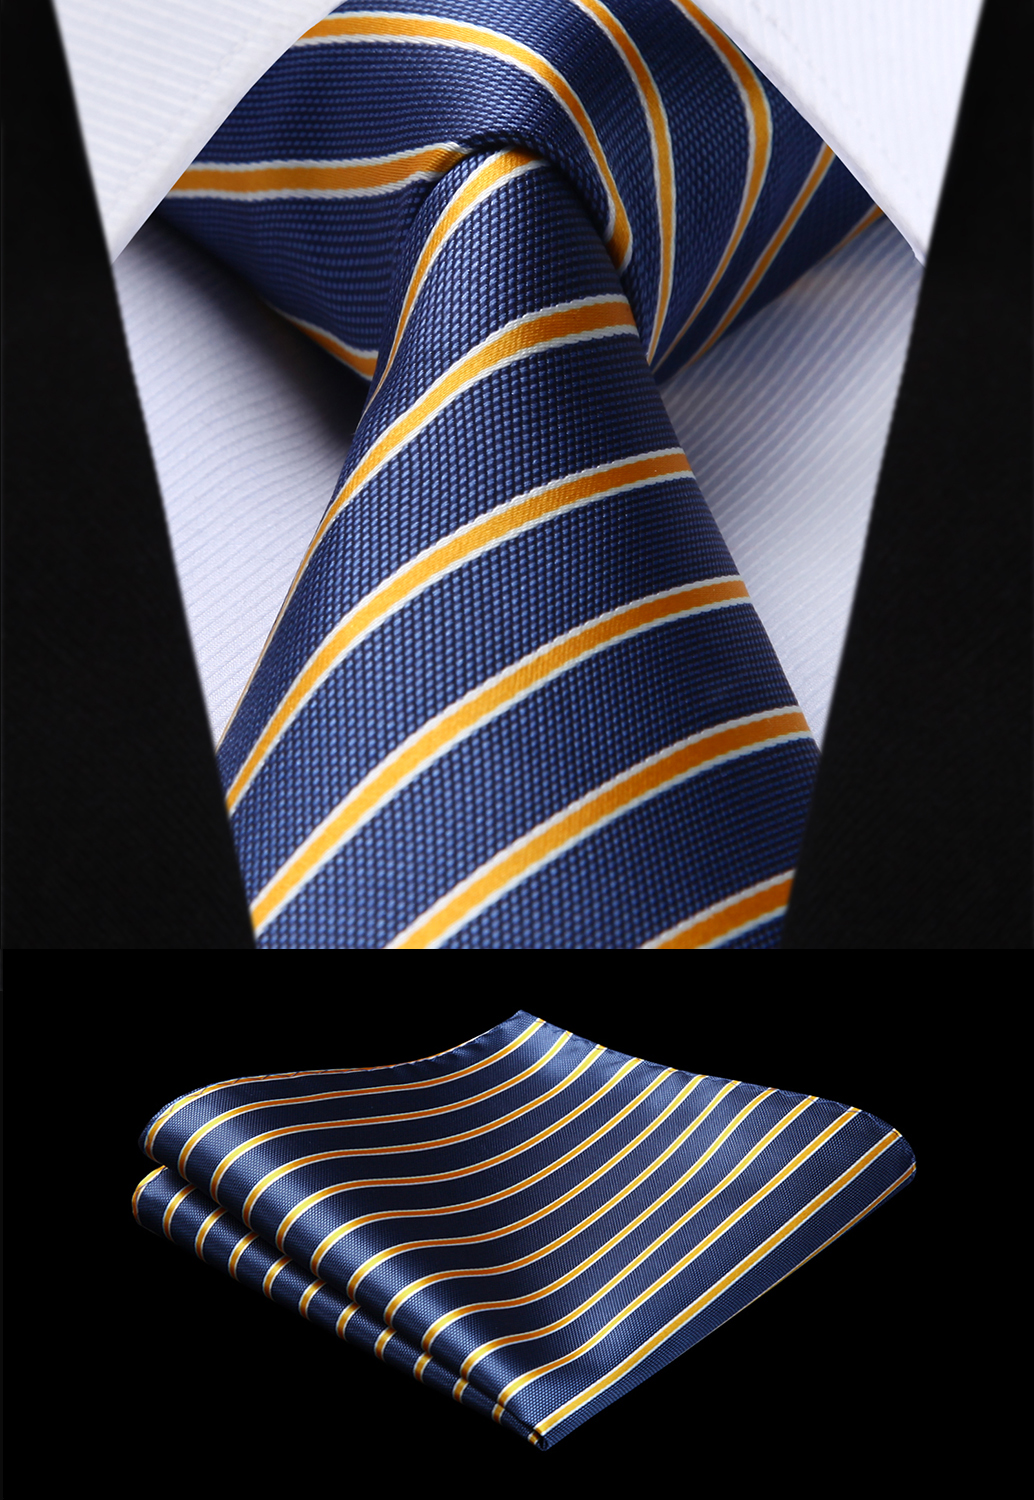 Woven Men Tie Blue Yellow Striped  Necktie Handkerchief Set#TS721B8S Party Wedding Classic Fashion Pocket Square Tie